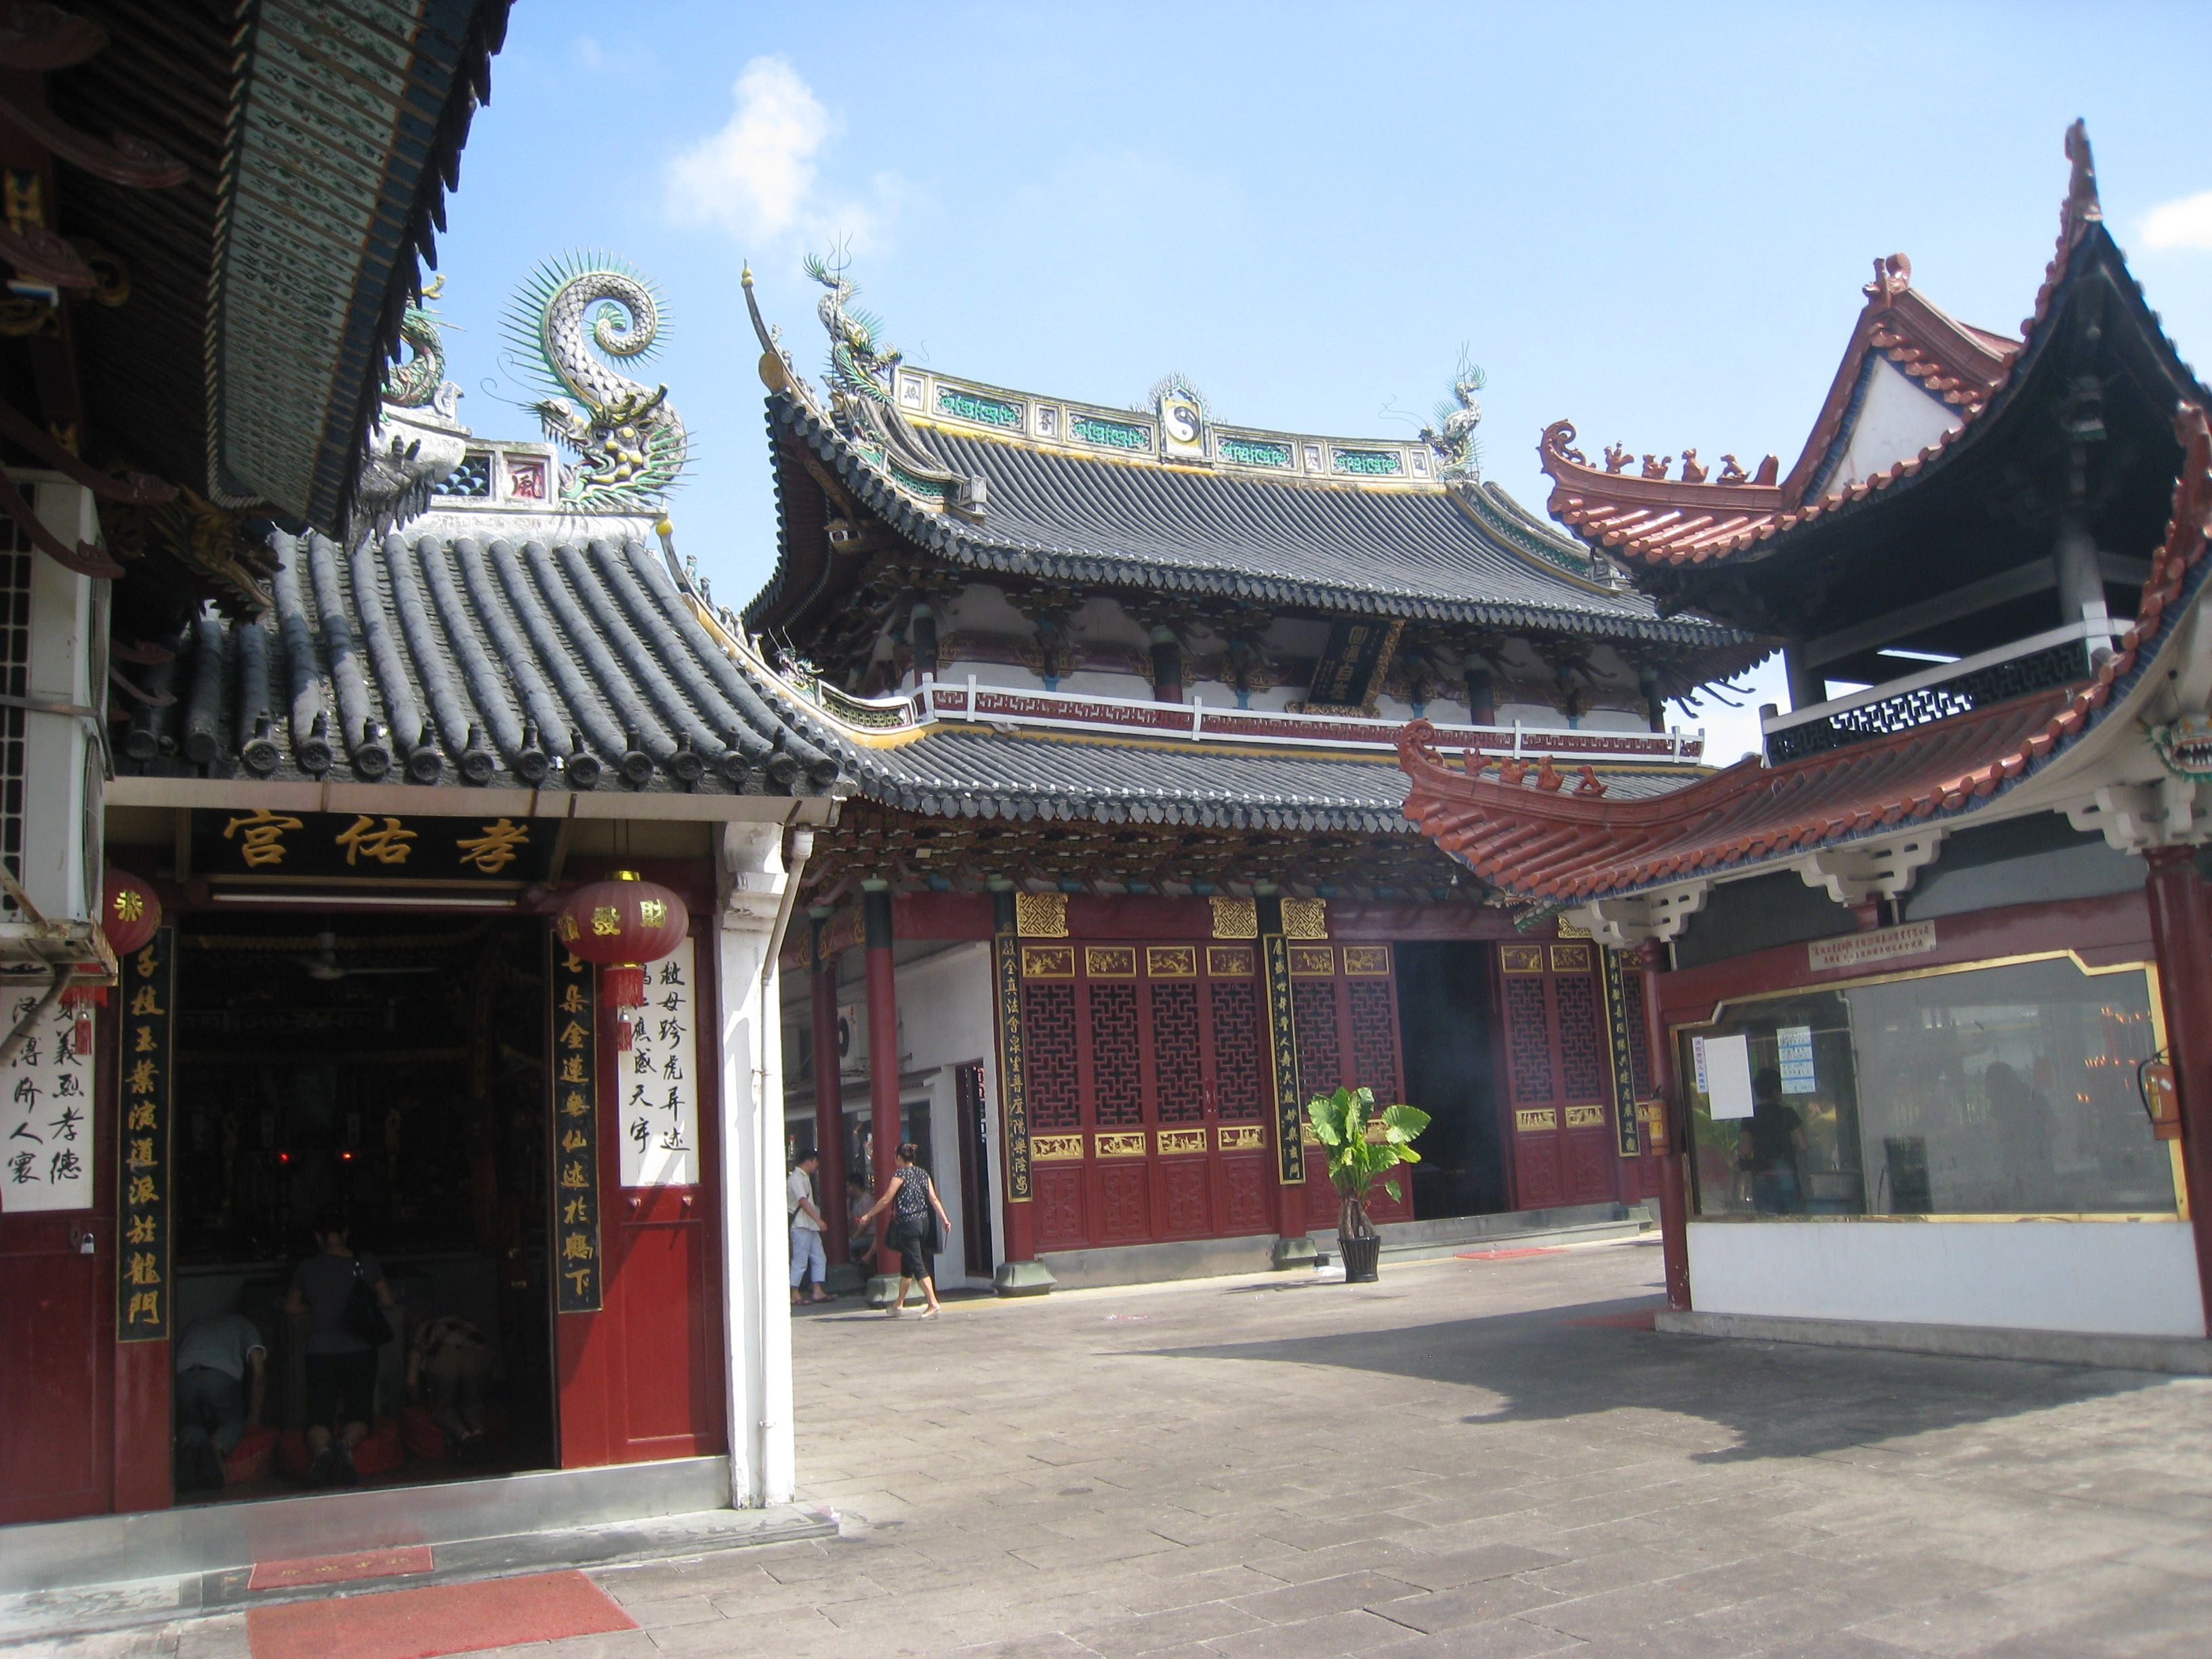 Palace in Wenzhou